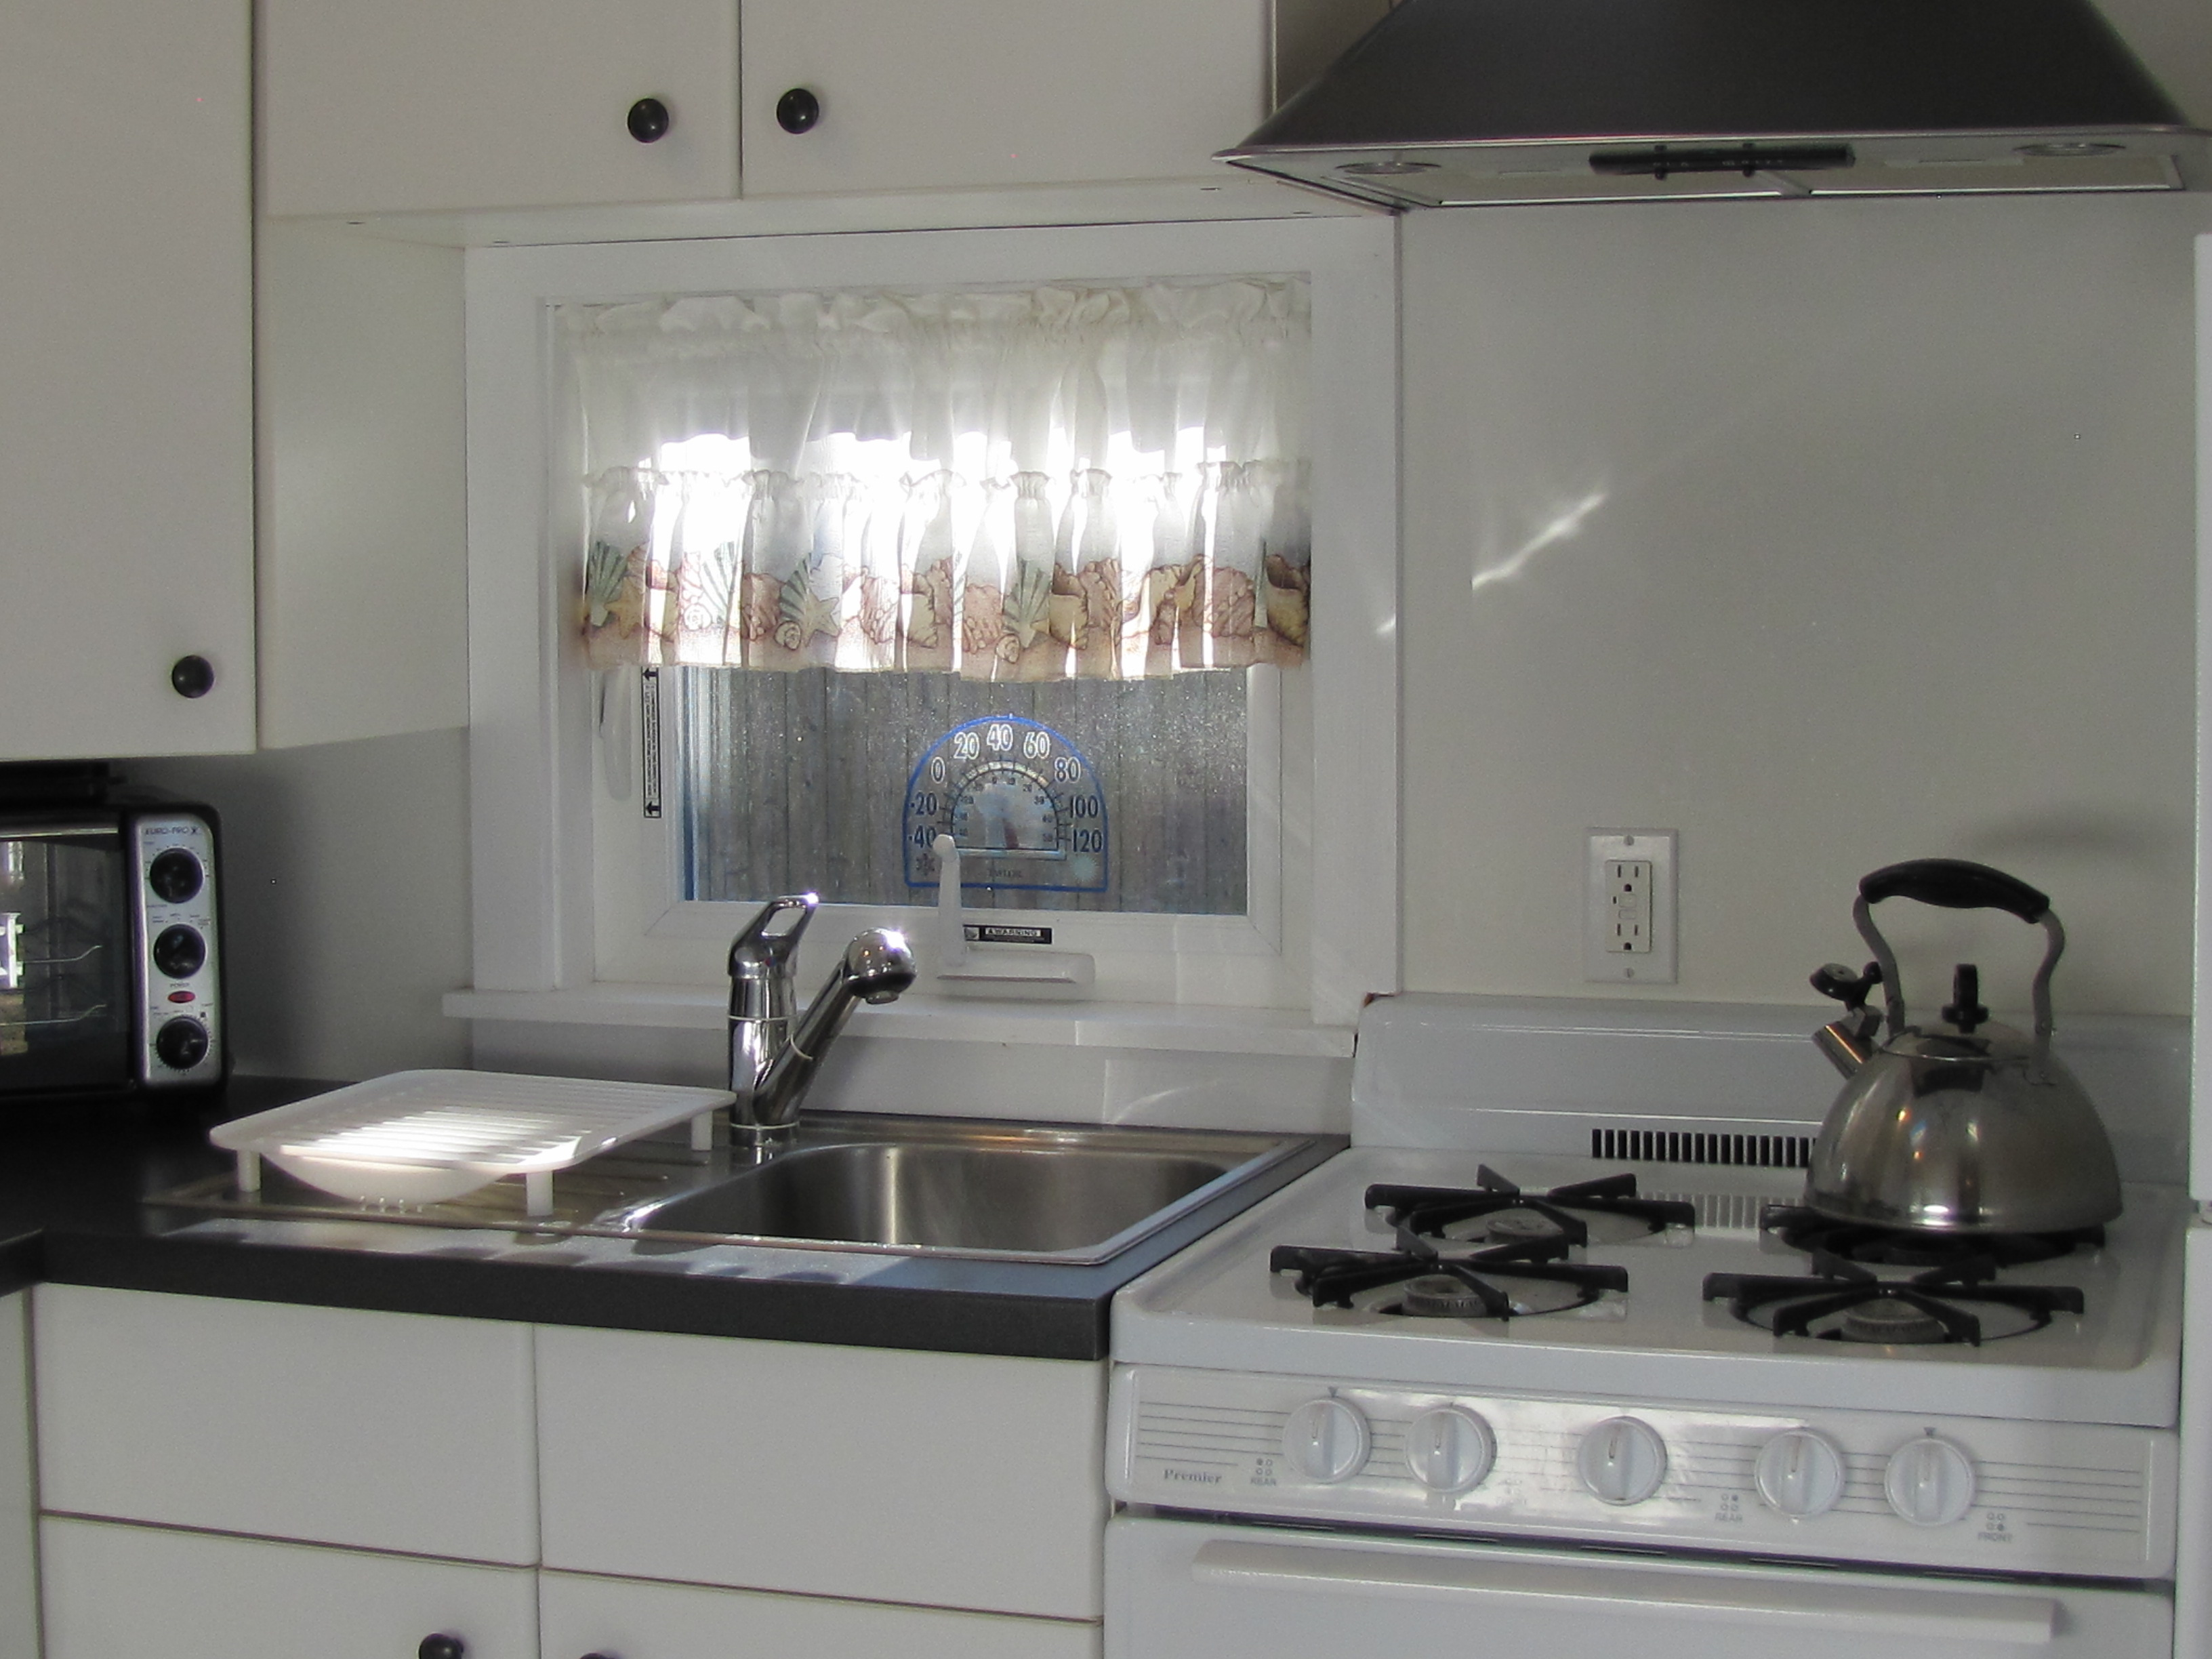 Kitchen Stove and Sink